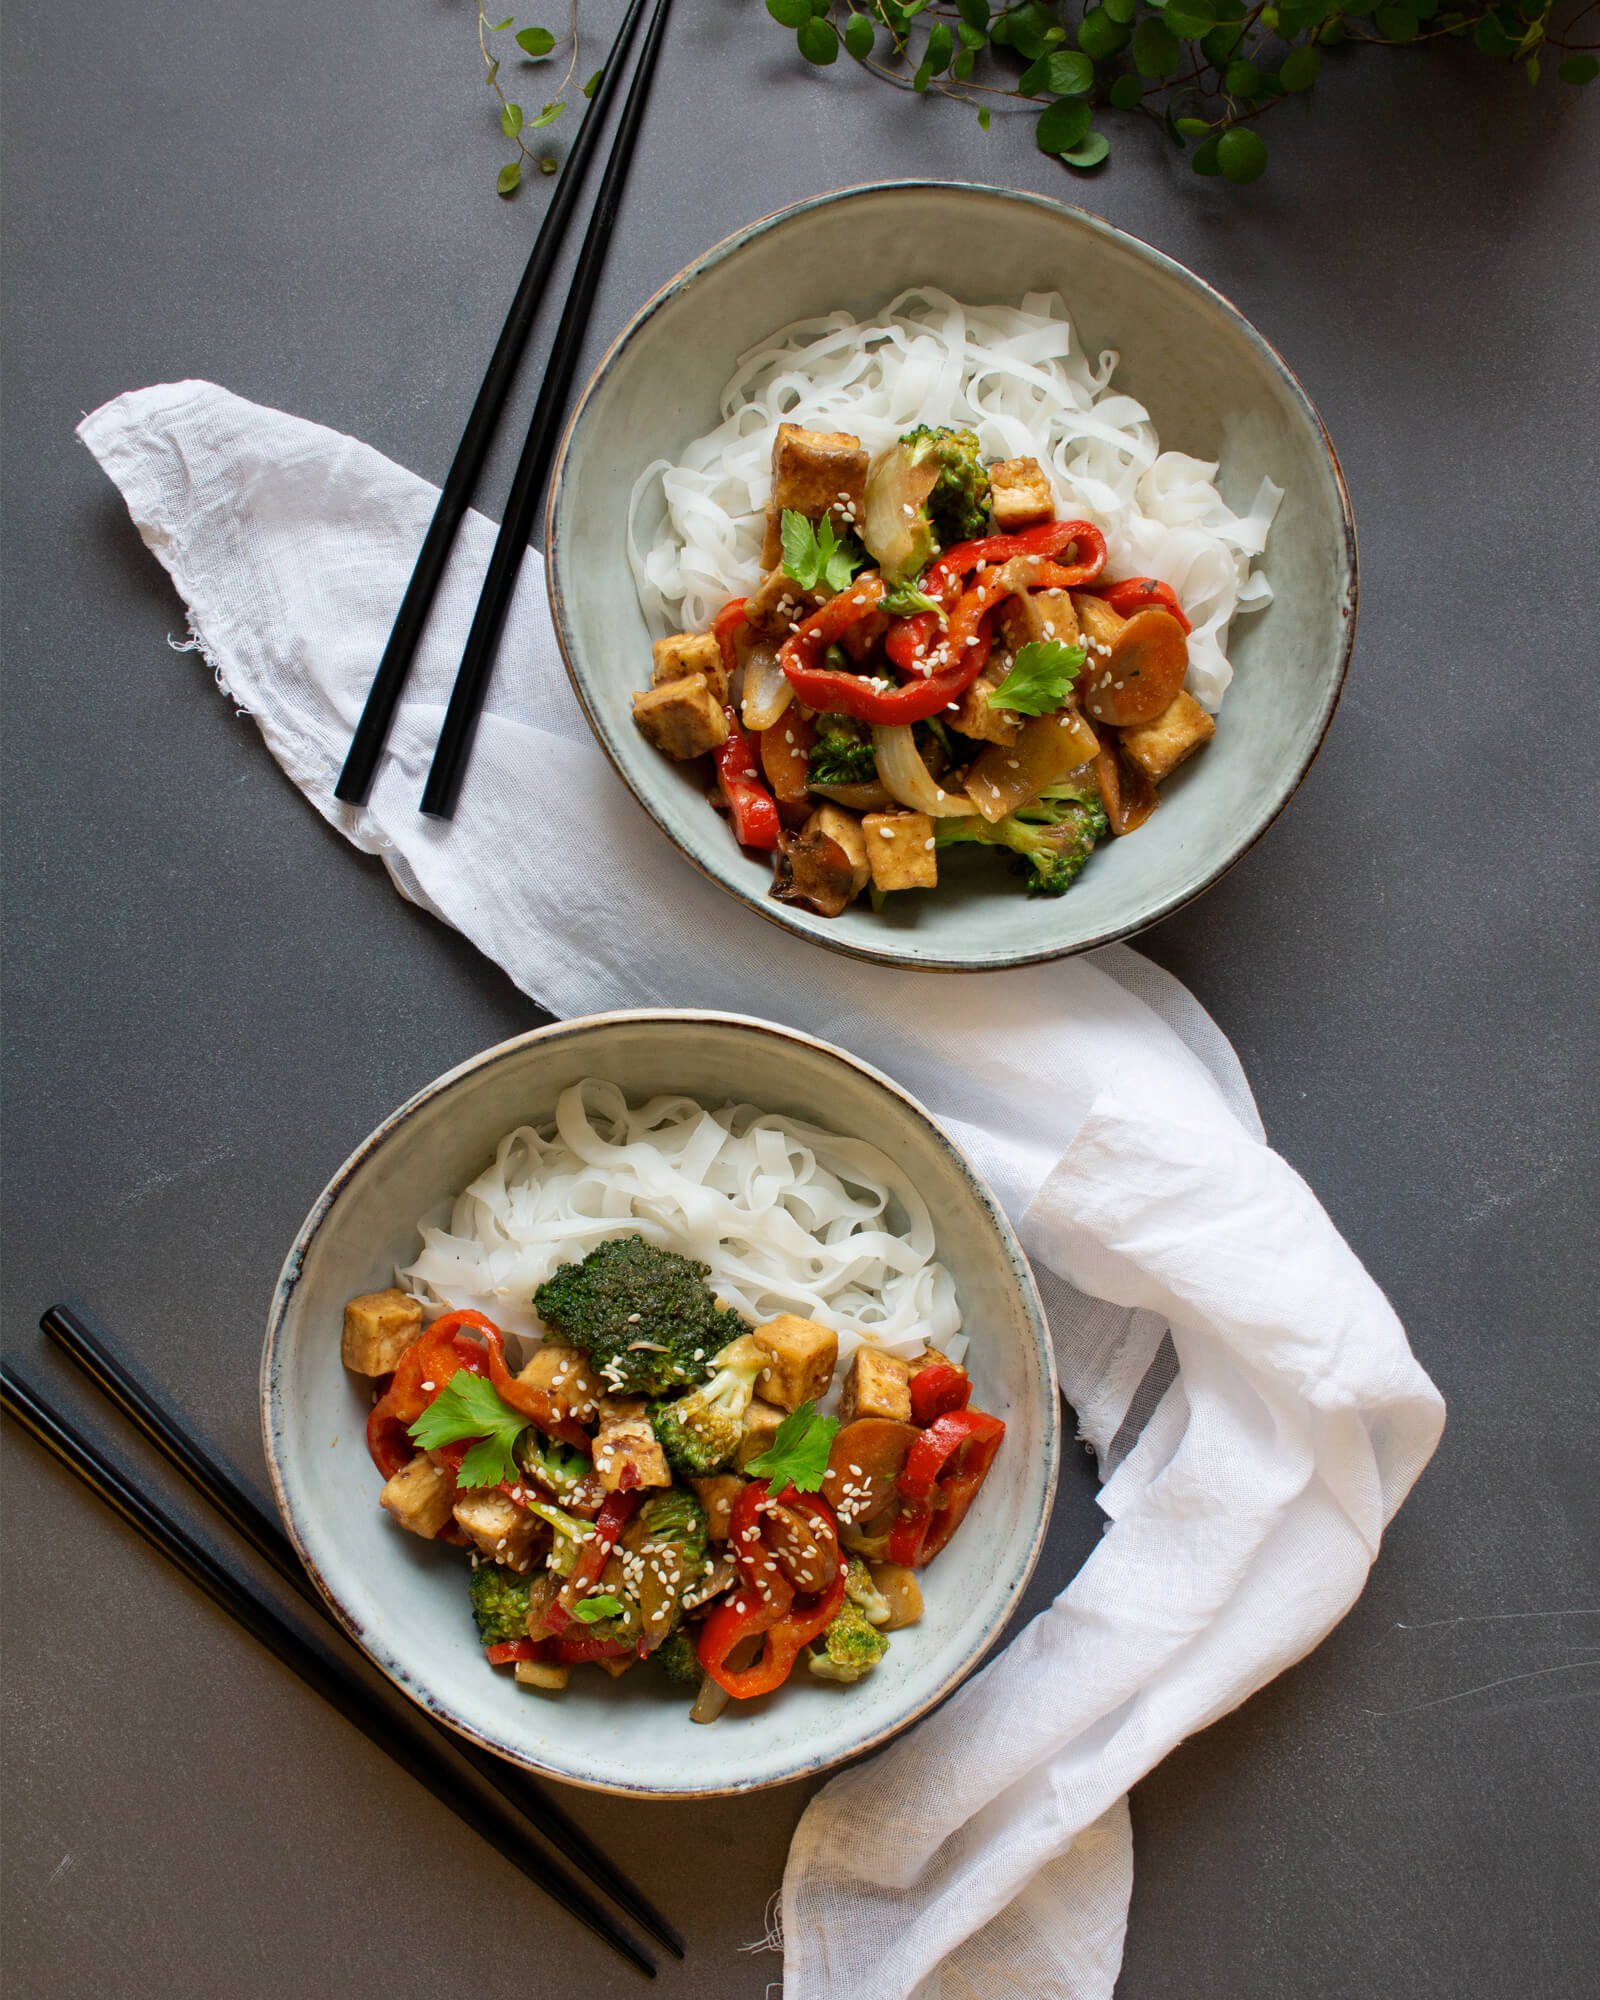 Recept på Mandelwok från Green Warrior